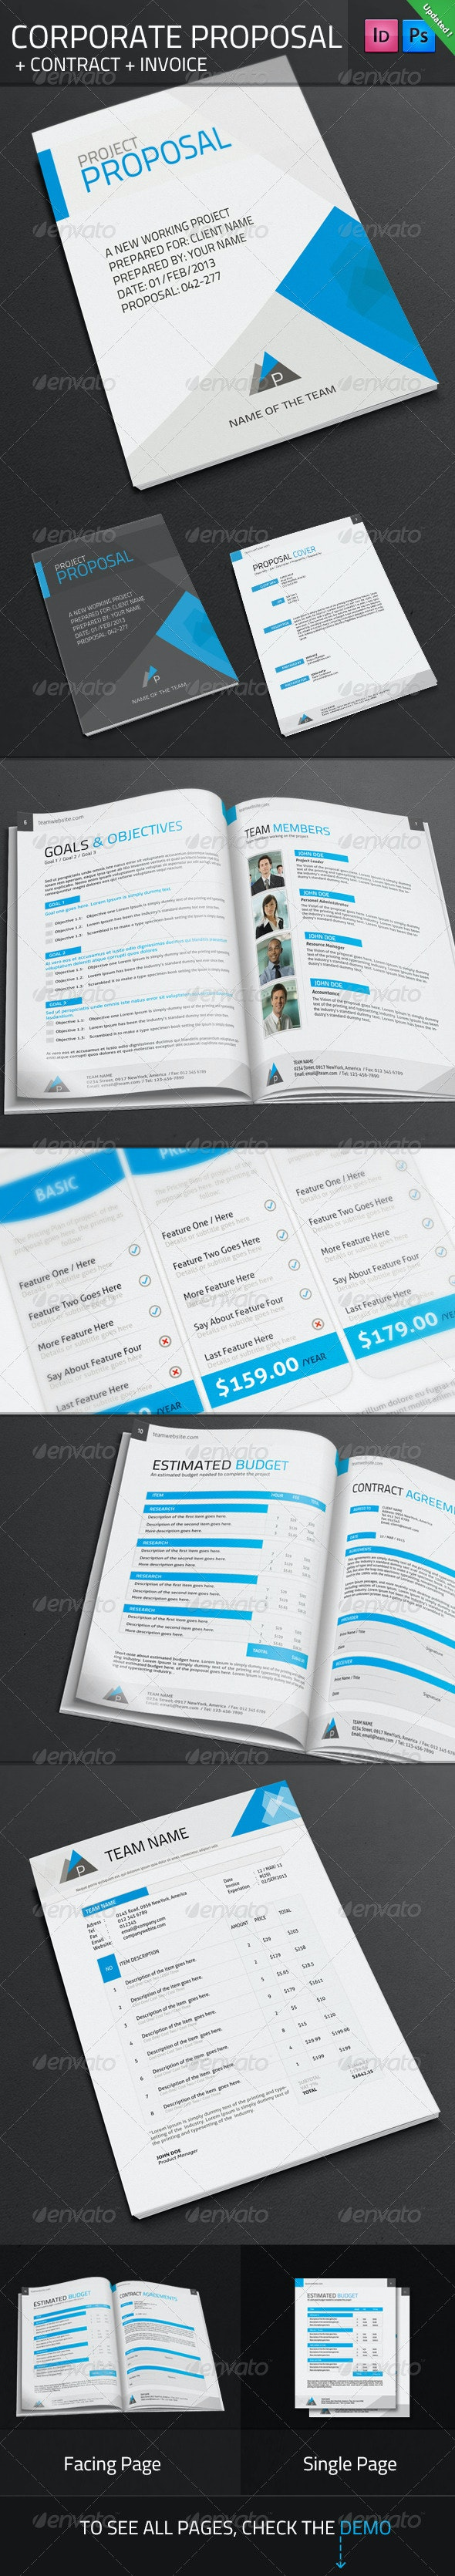 Corporate Proposal + Contract + Invoice - Proposals & Invoices Stationery